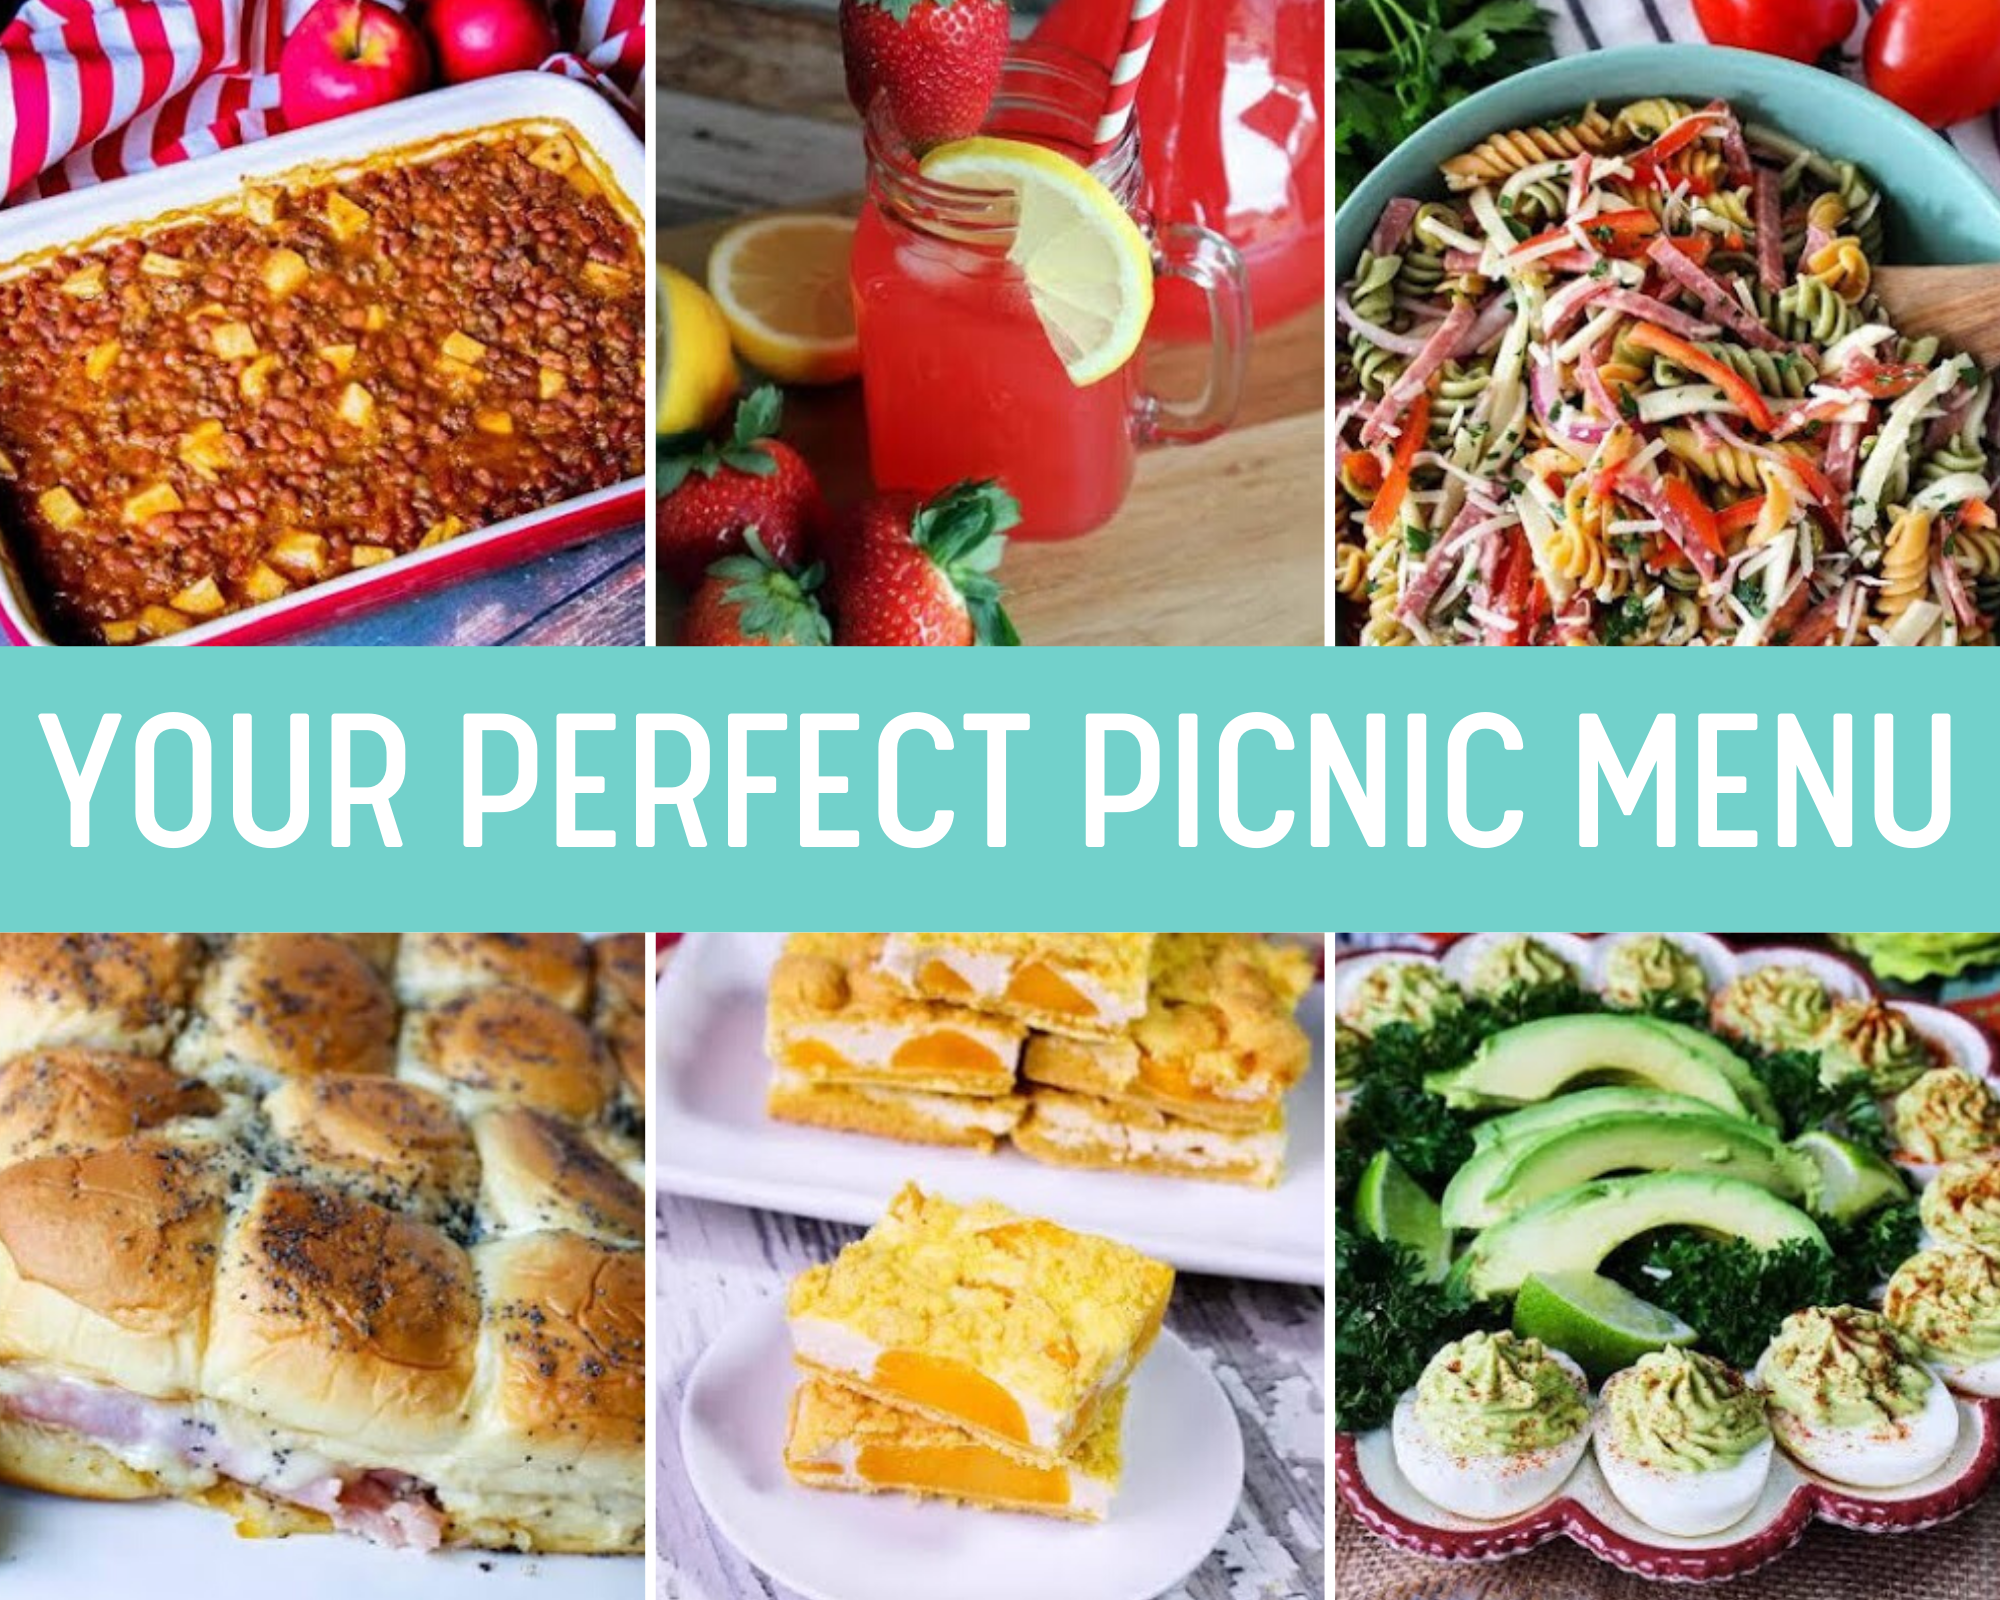 Picnic appetizers, sides, main dishes and drinks